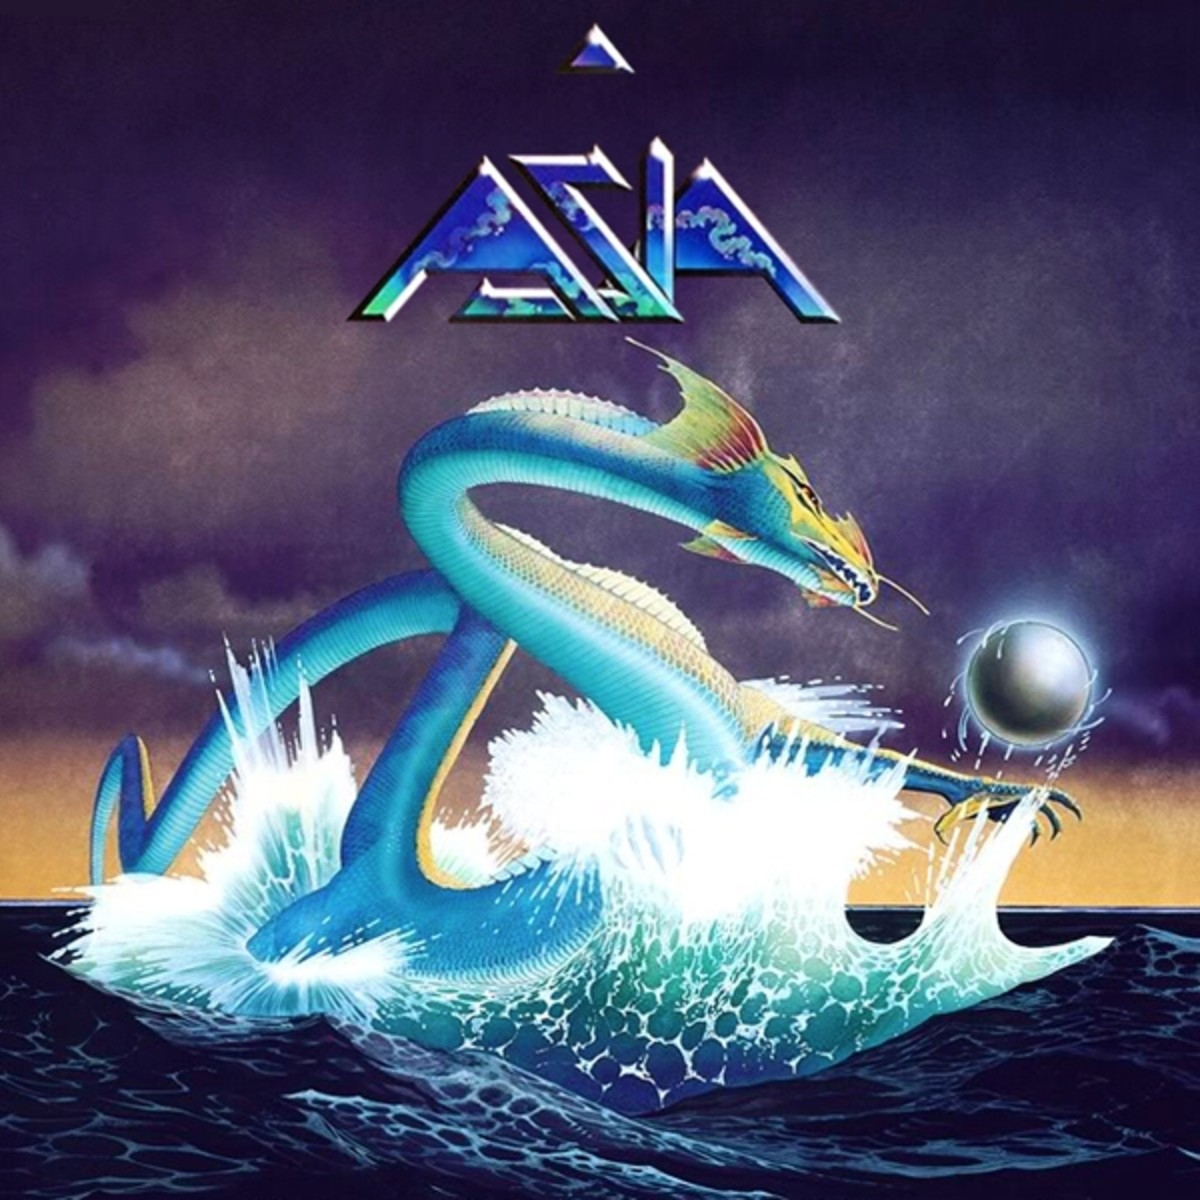 Asia's debut album, 1982. Art by Roger Dean.